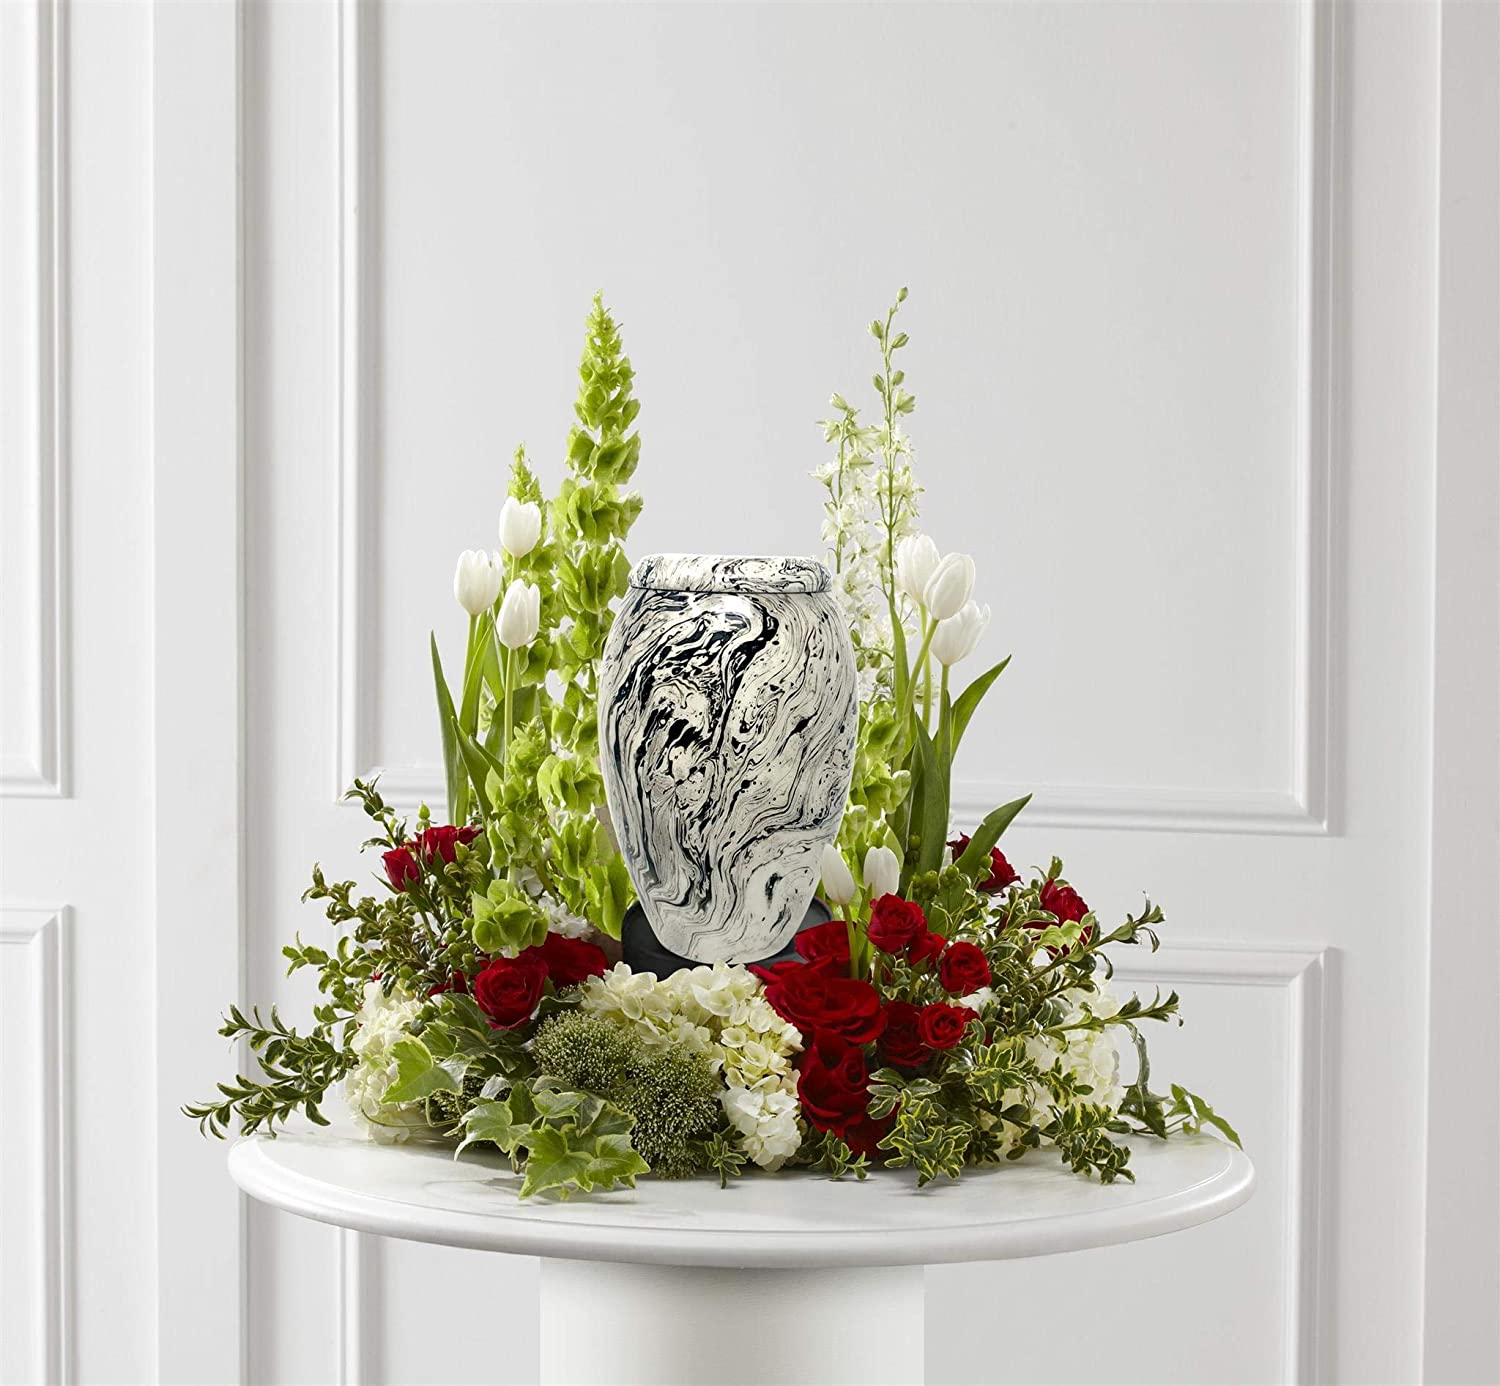 Snow White Cremation Urn – Genuine Solid Metal White Adult Urn – Large White Waves Funeral Urn – 100 Handcrafted Affordable Urn for Human Ashes with Free Bag